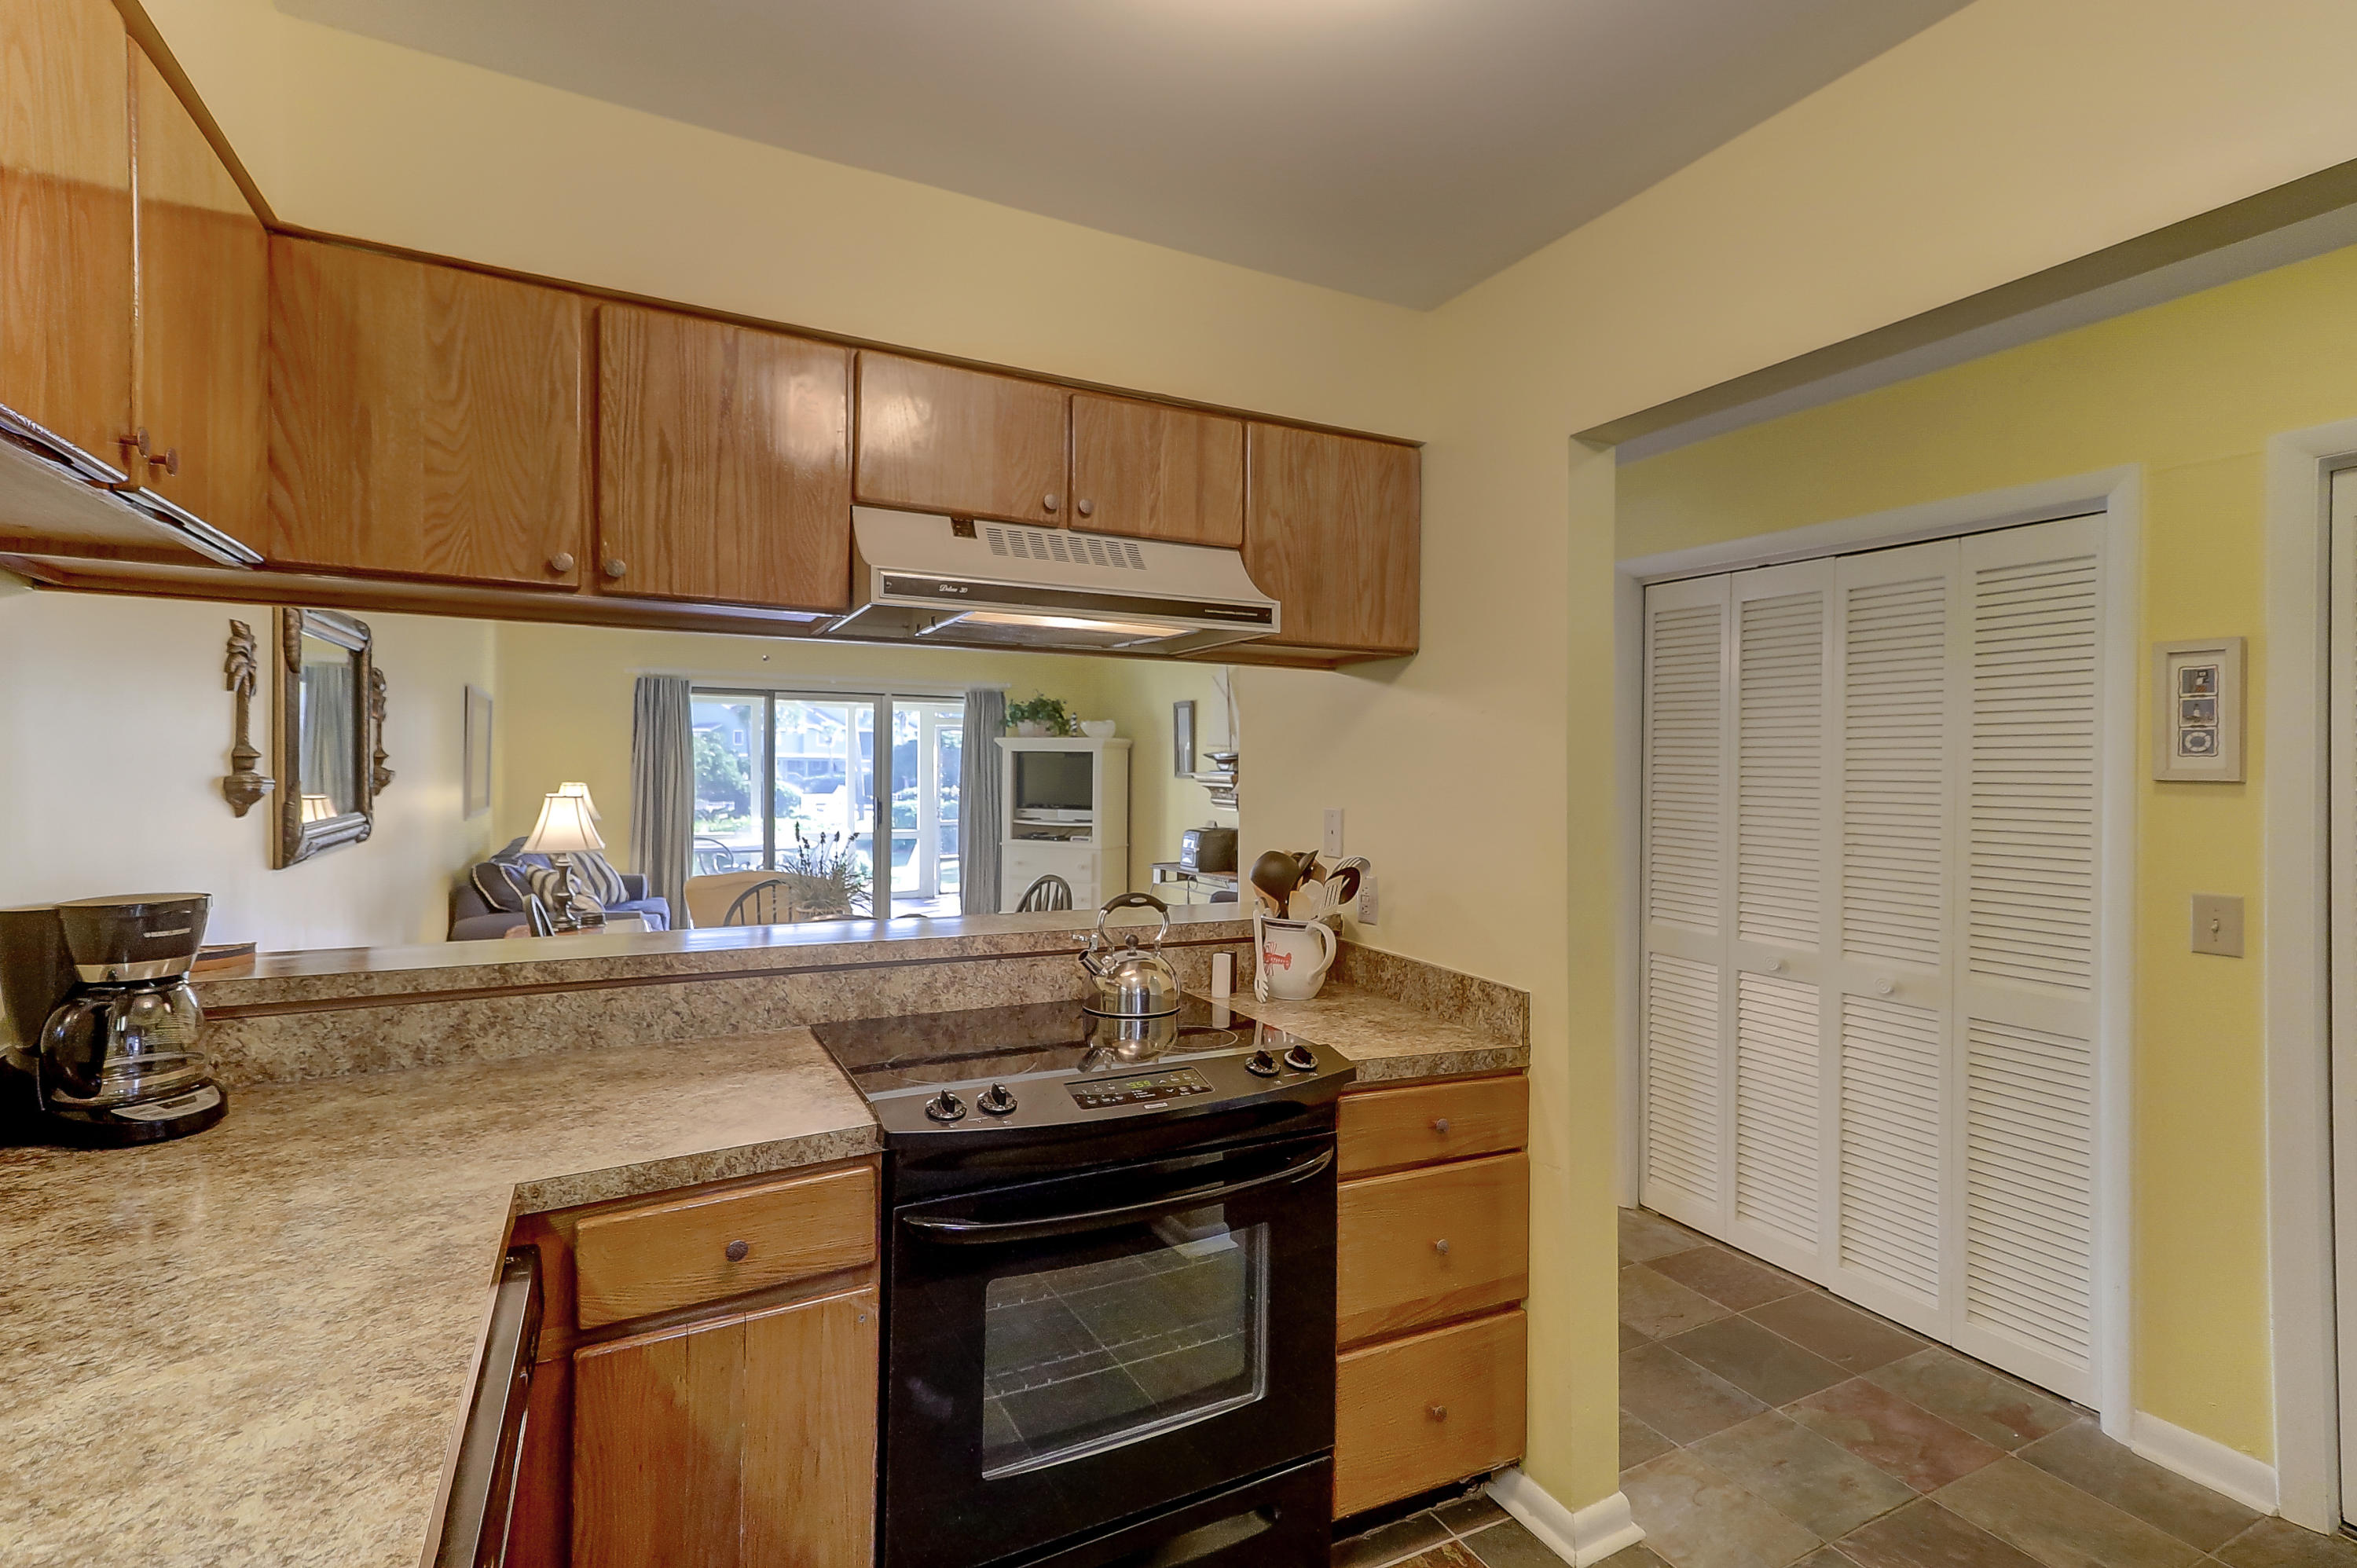 Wild Dunes Homes For Sale - 5-C Mariners Walk, Isle of Palms, SC - 27